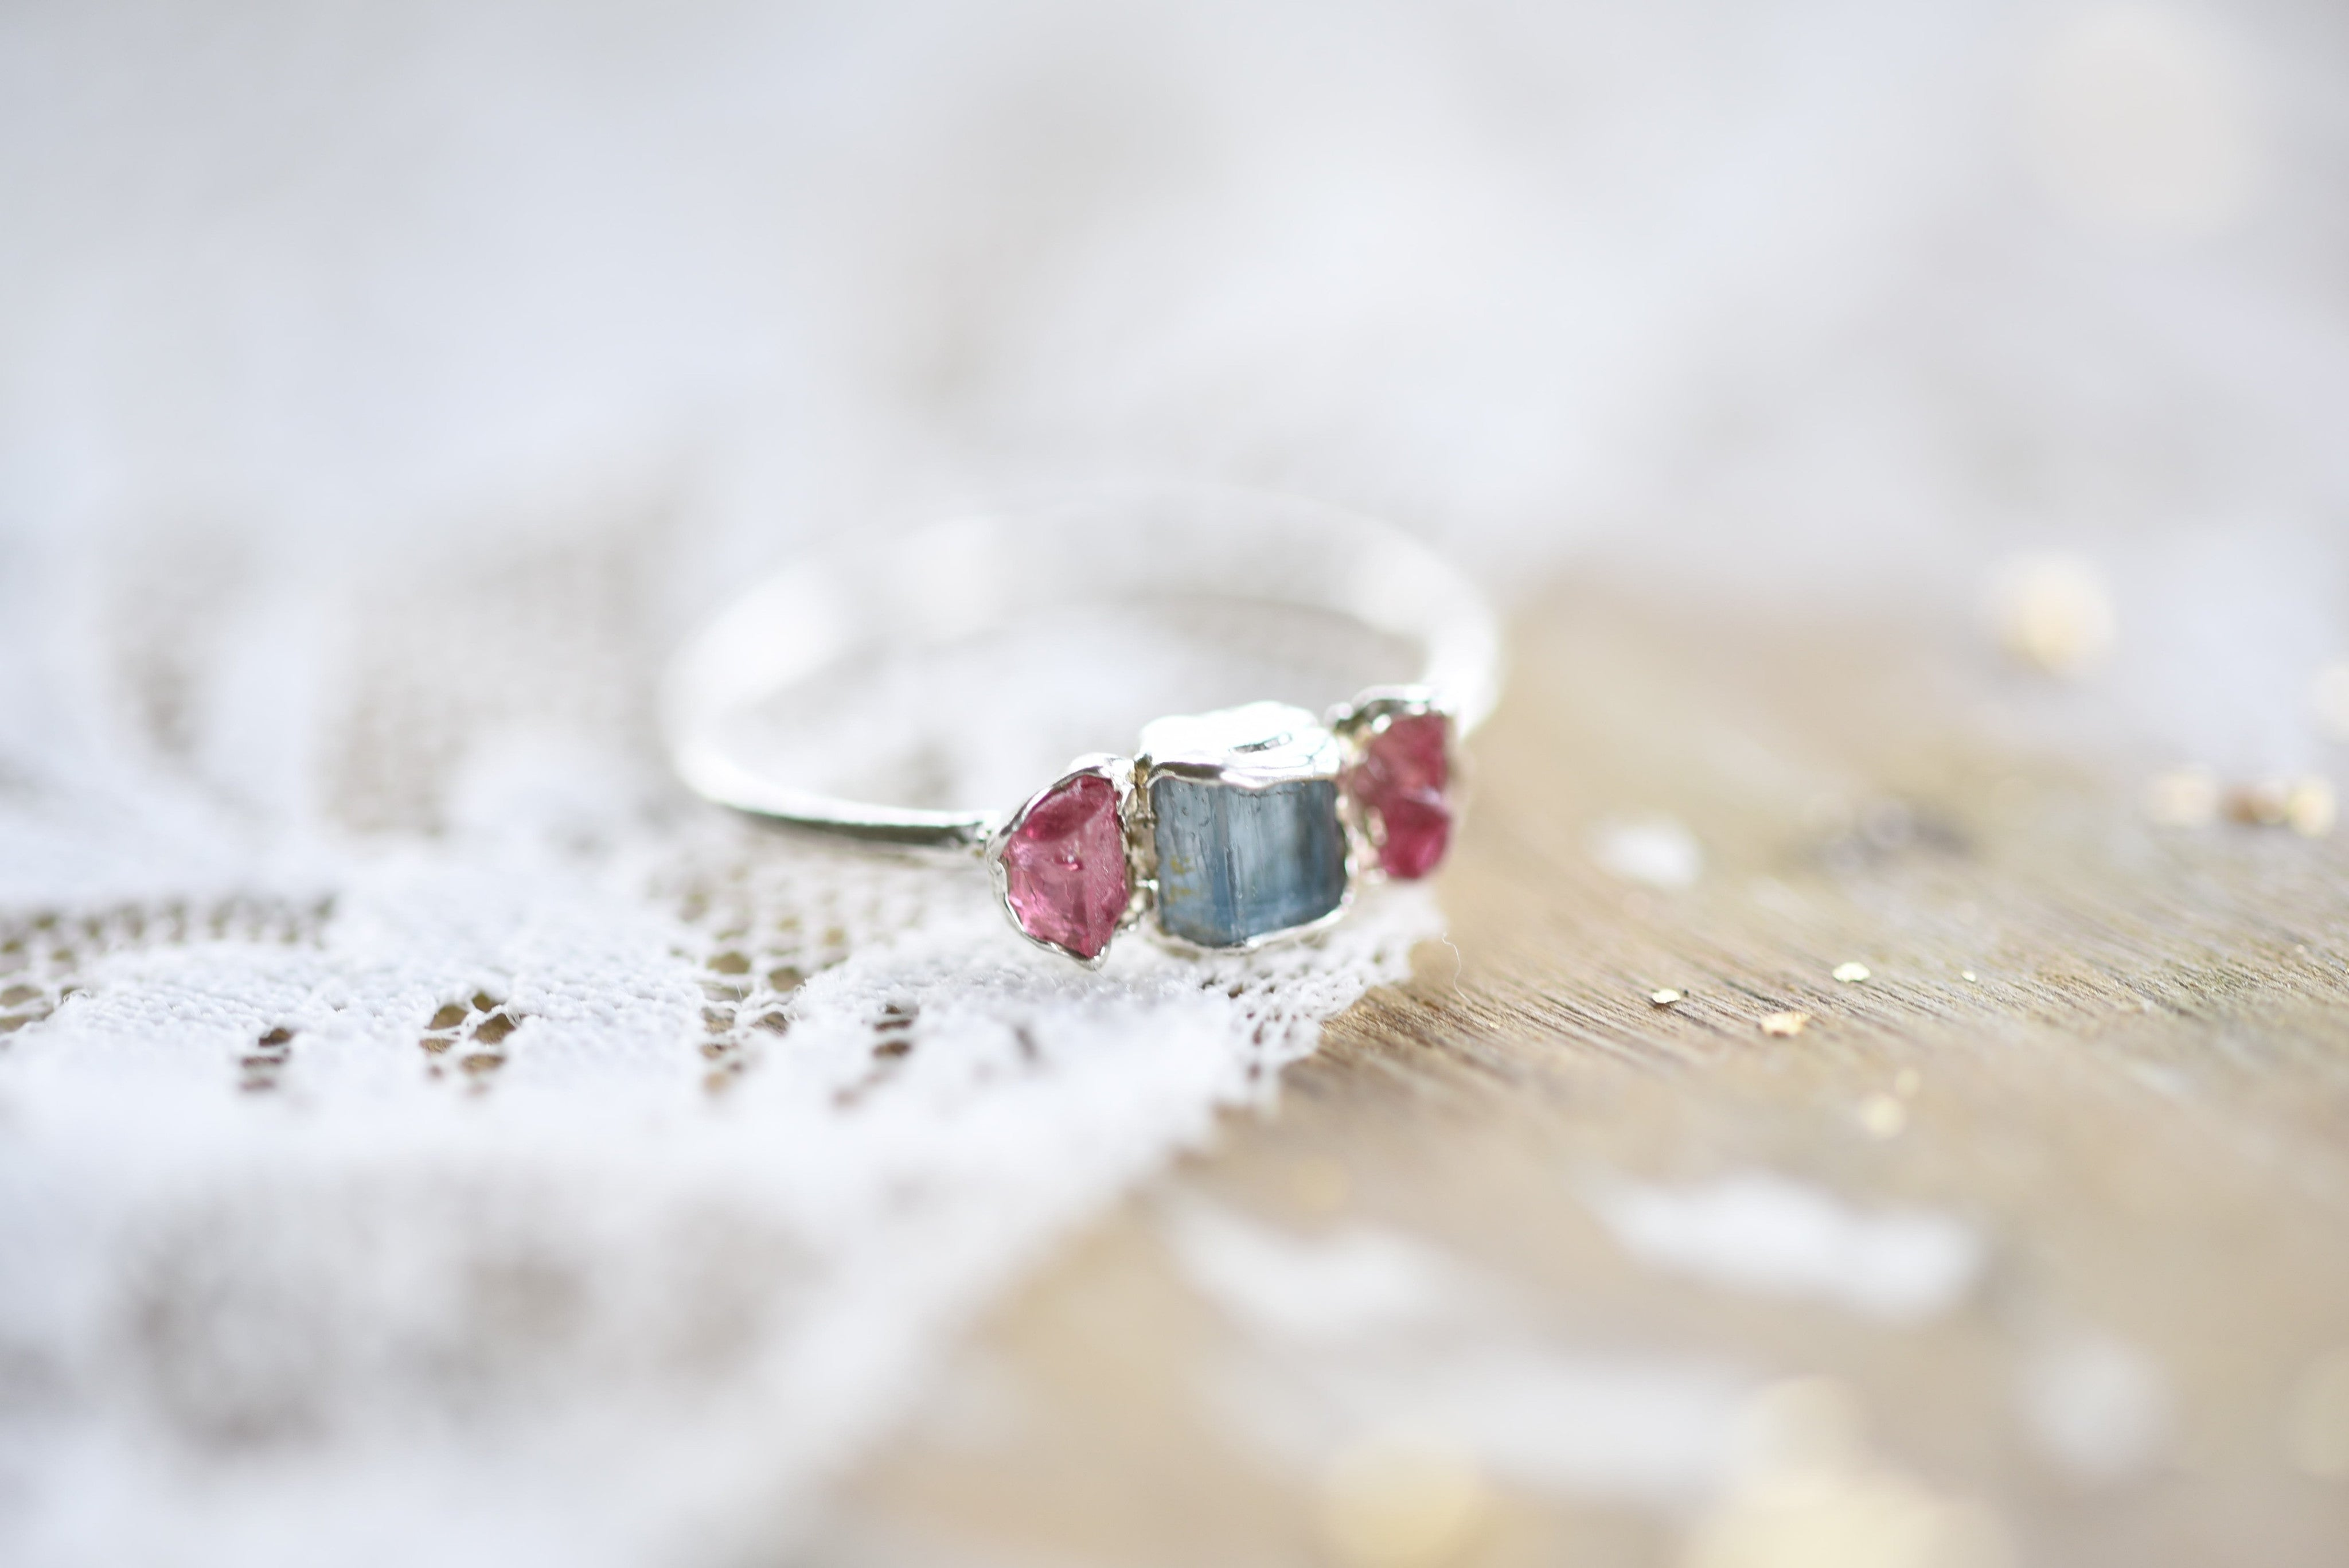 RAW AQUAMARINE AND PINK TOURMAILINE RING IN FINE SILVER